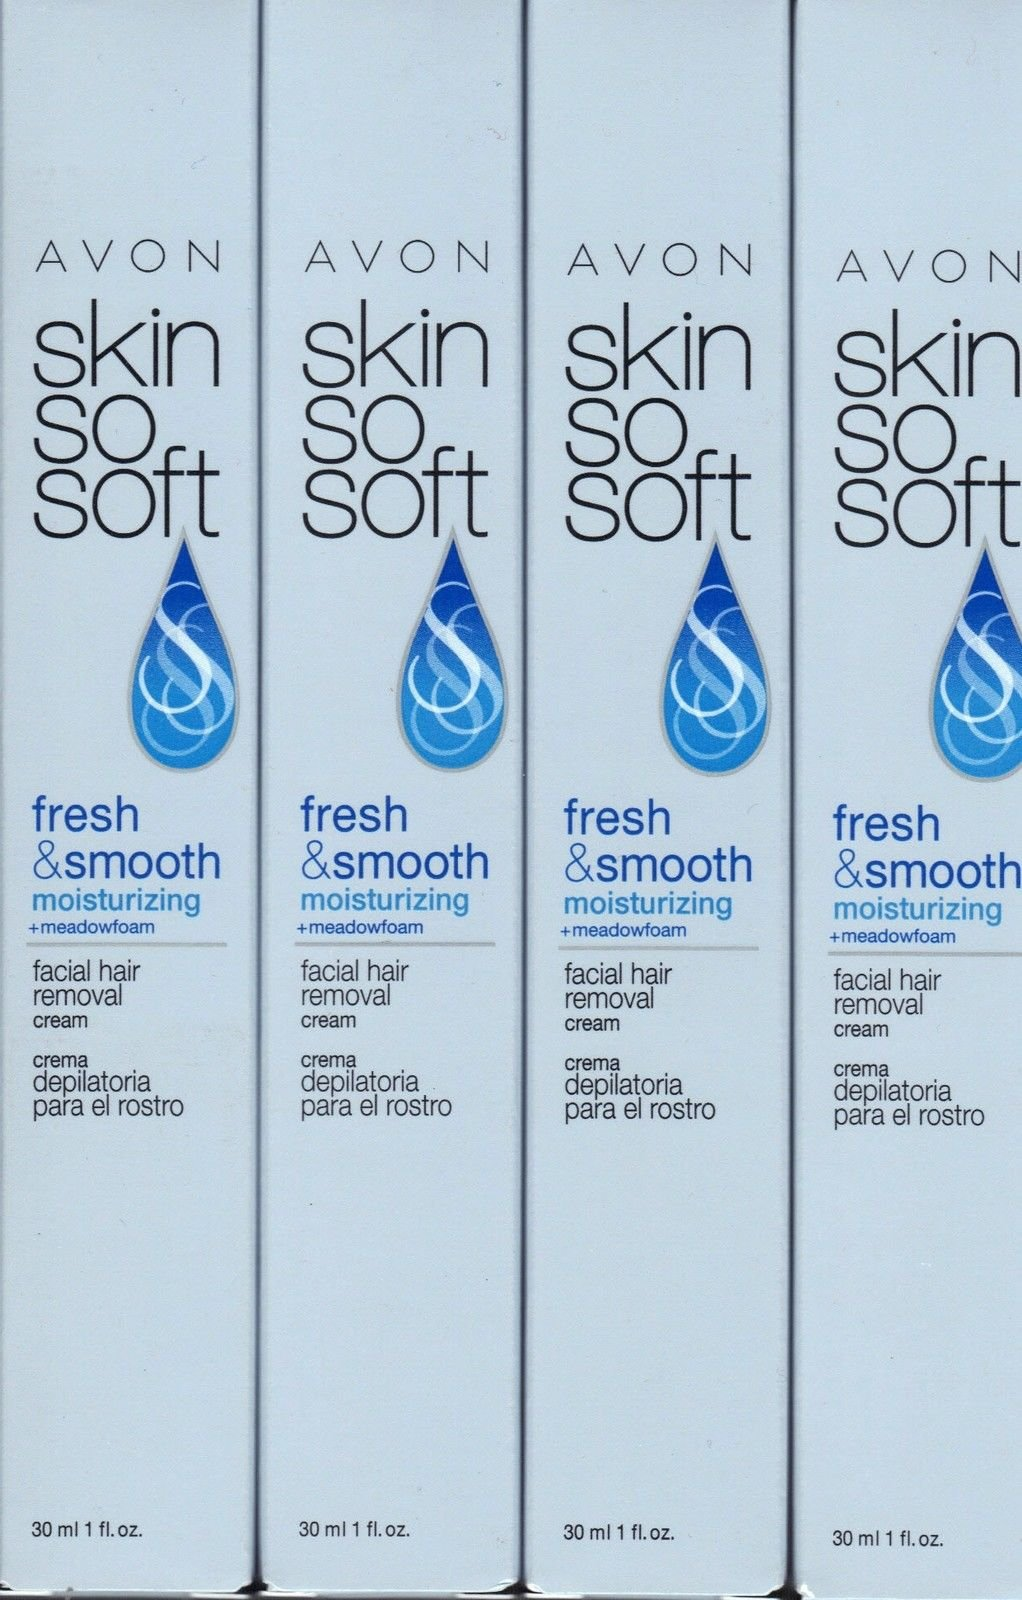 Avon Skin So Soft Facial Hair Removal Cream Lot of 4 by Avon face hair removal cream (Image #1)